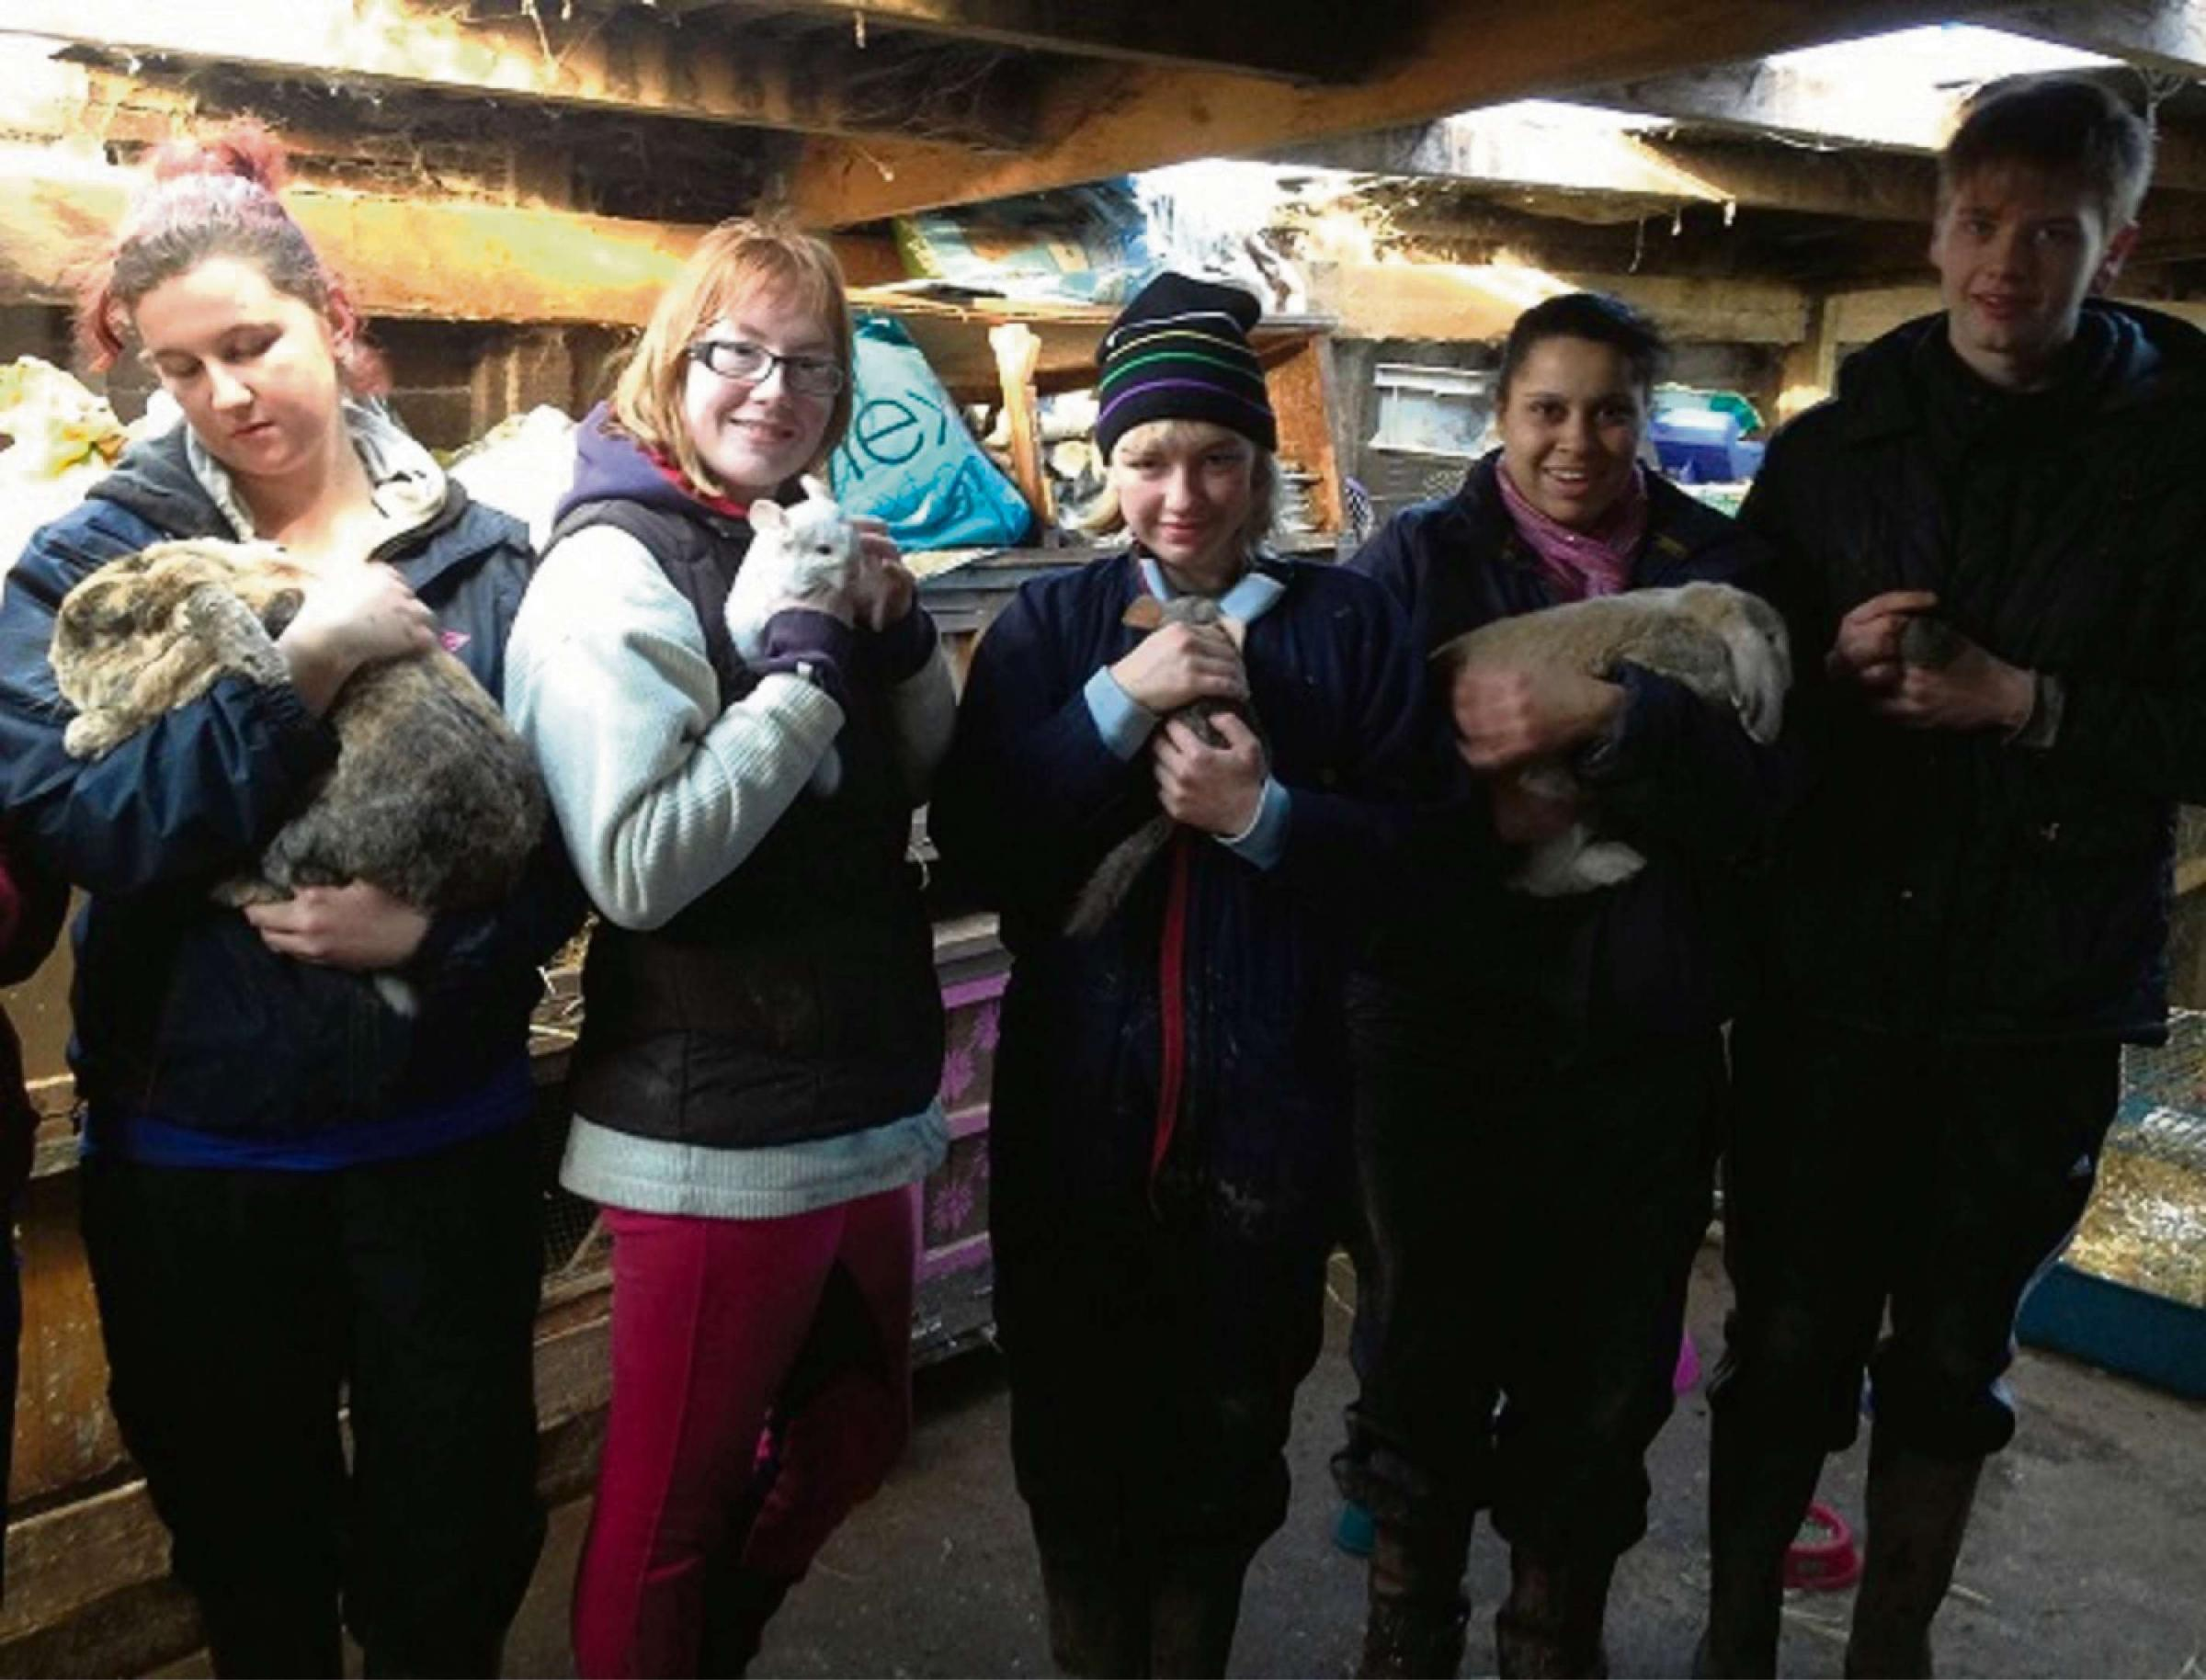 Helping out with the animals at Gloverspiece: (from left) Lucinda Blackmore, Chloe Wood, Abigail Drew, Sophia